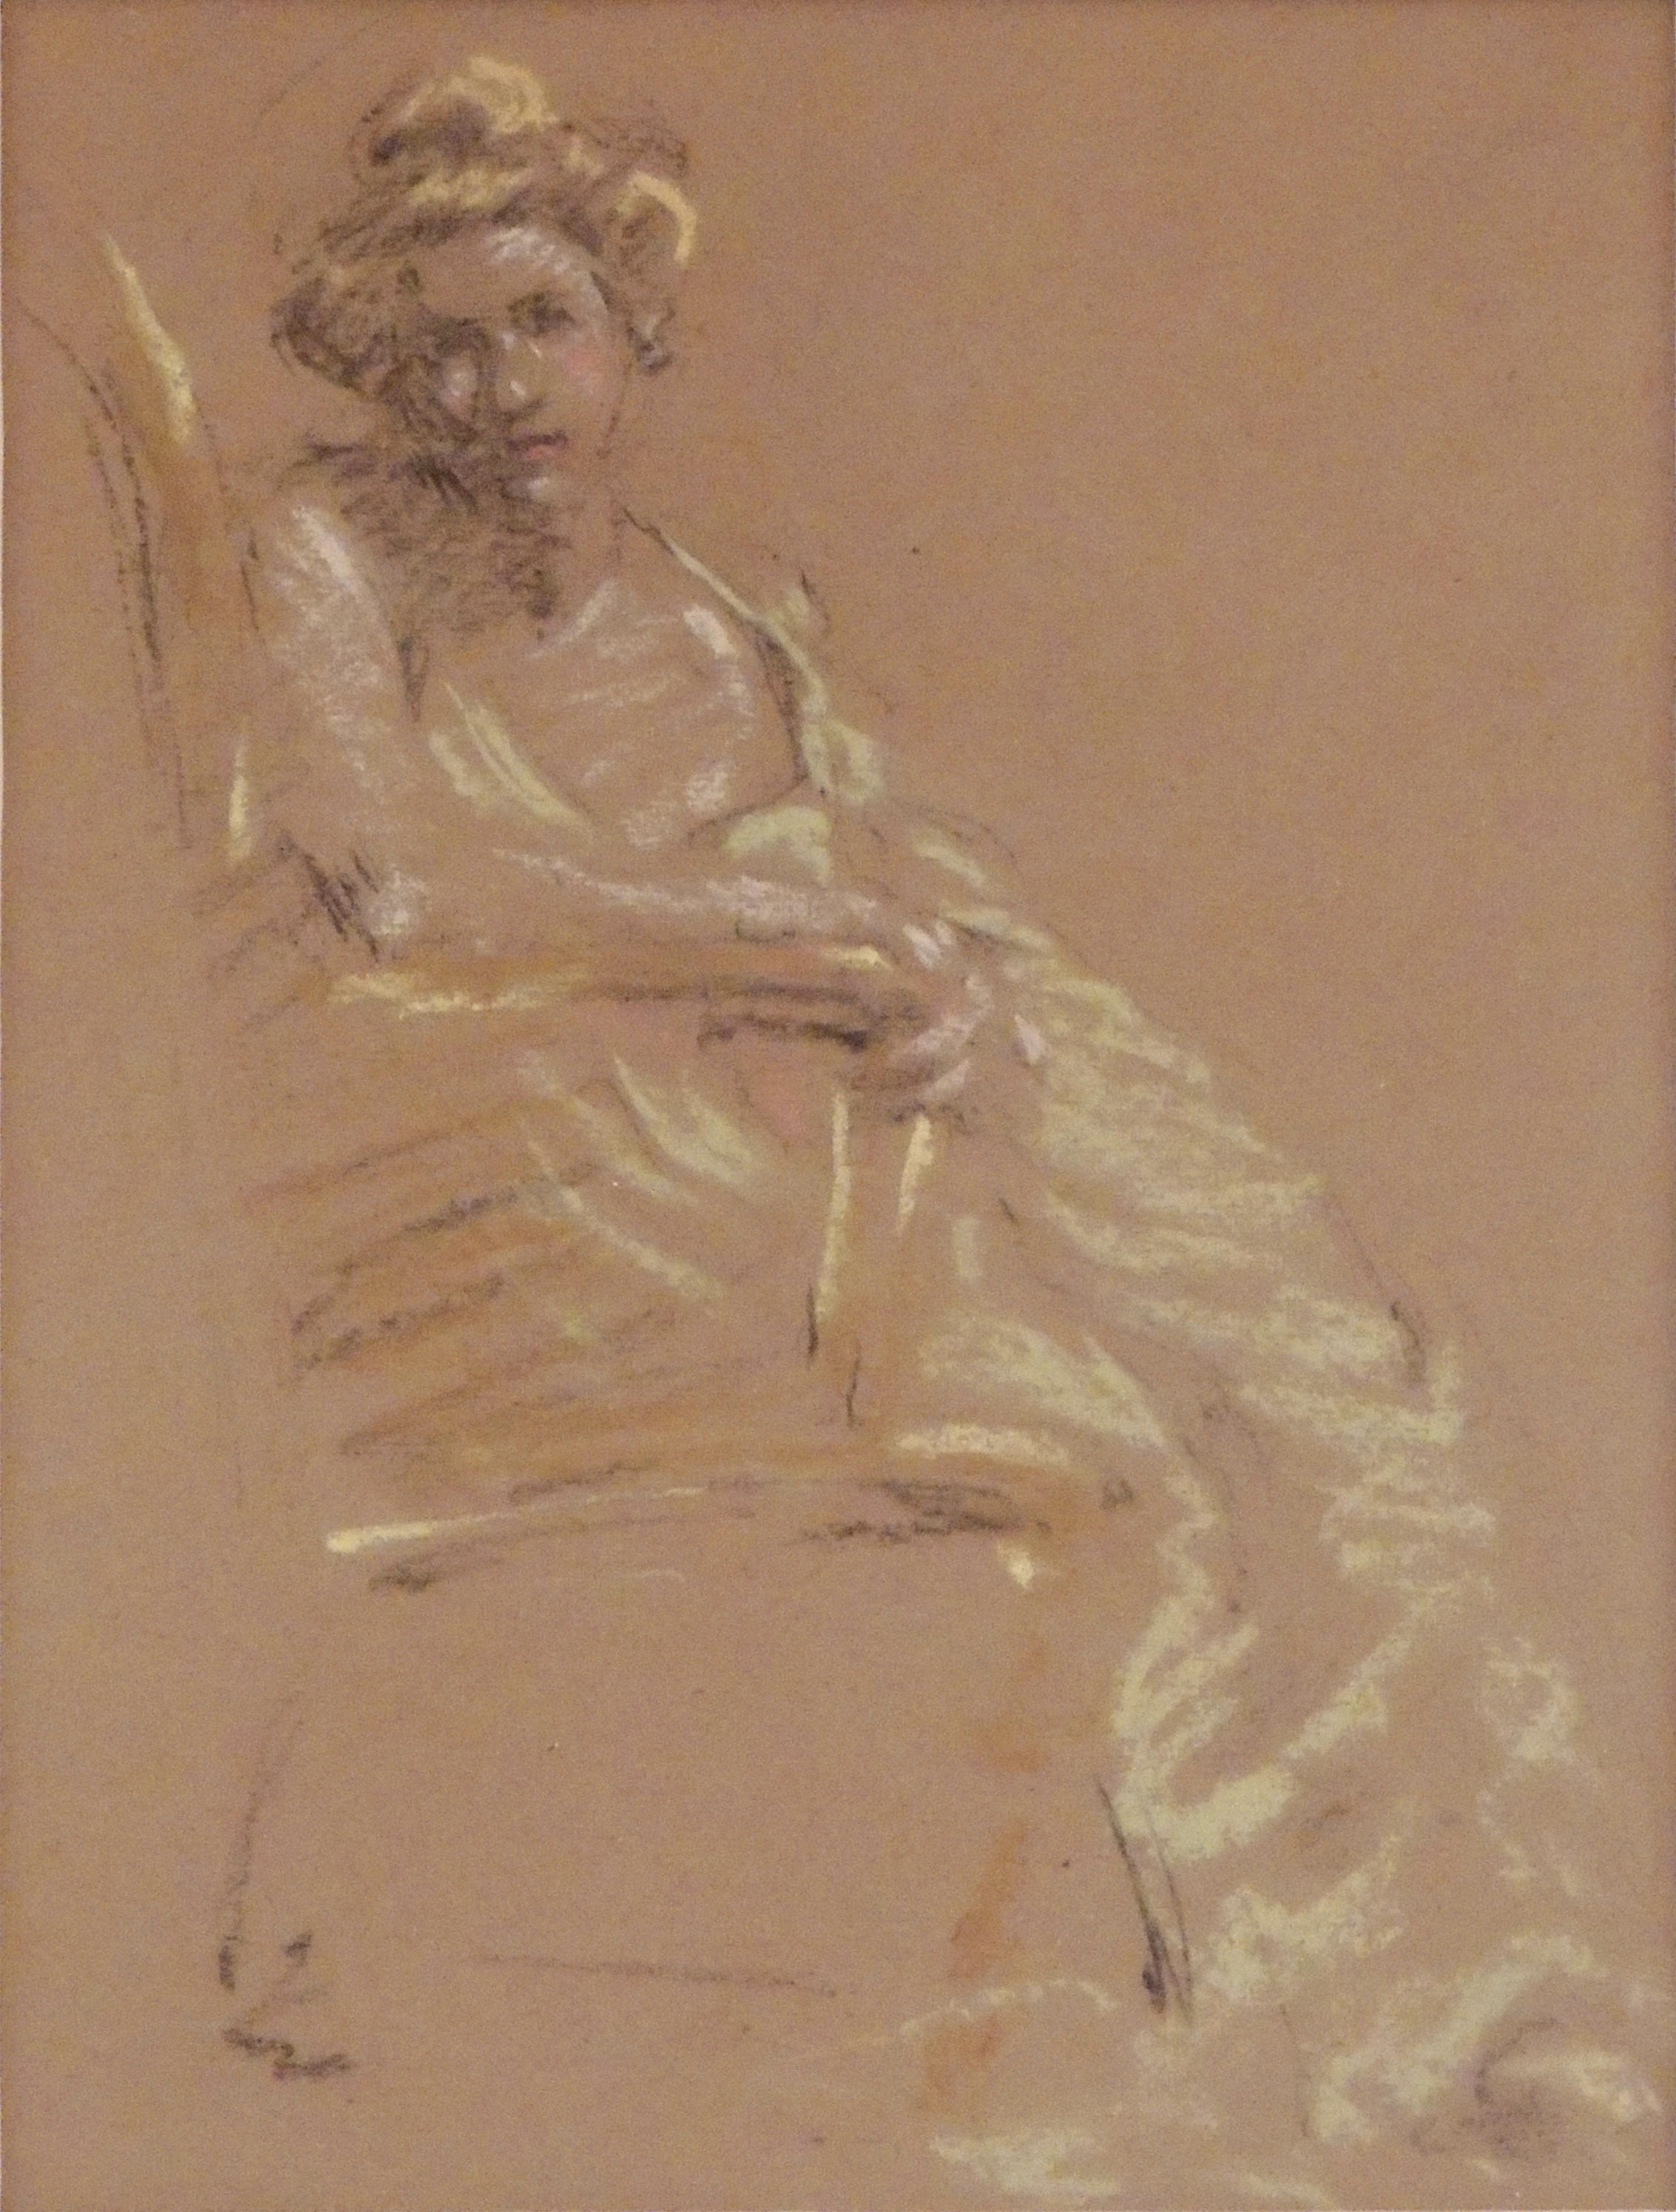 James R. Hopkins | LADY IN LEMON | pastel on paper | 8 x 26"